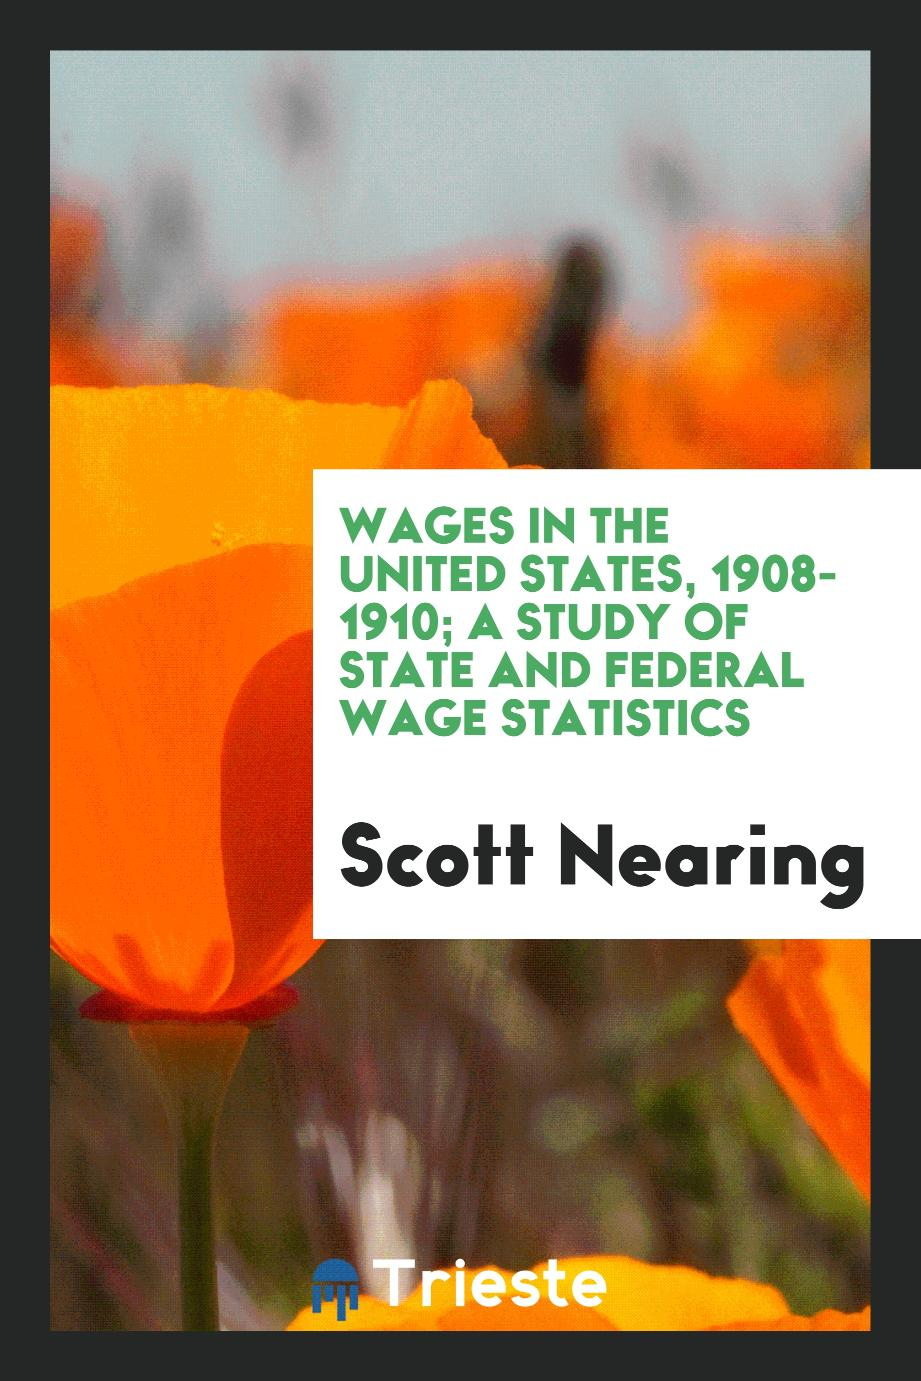 Wages in the United States, 1908-1910; a study of state and federal wage statistics